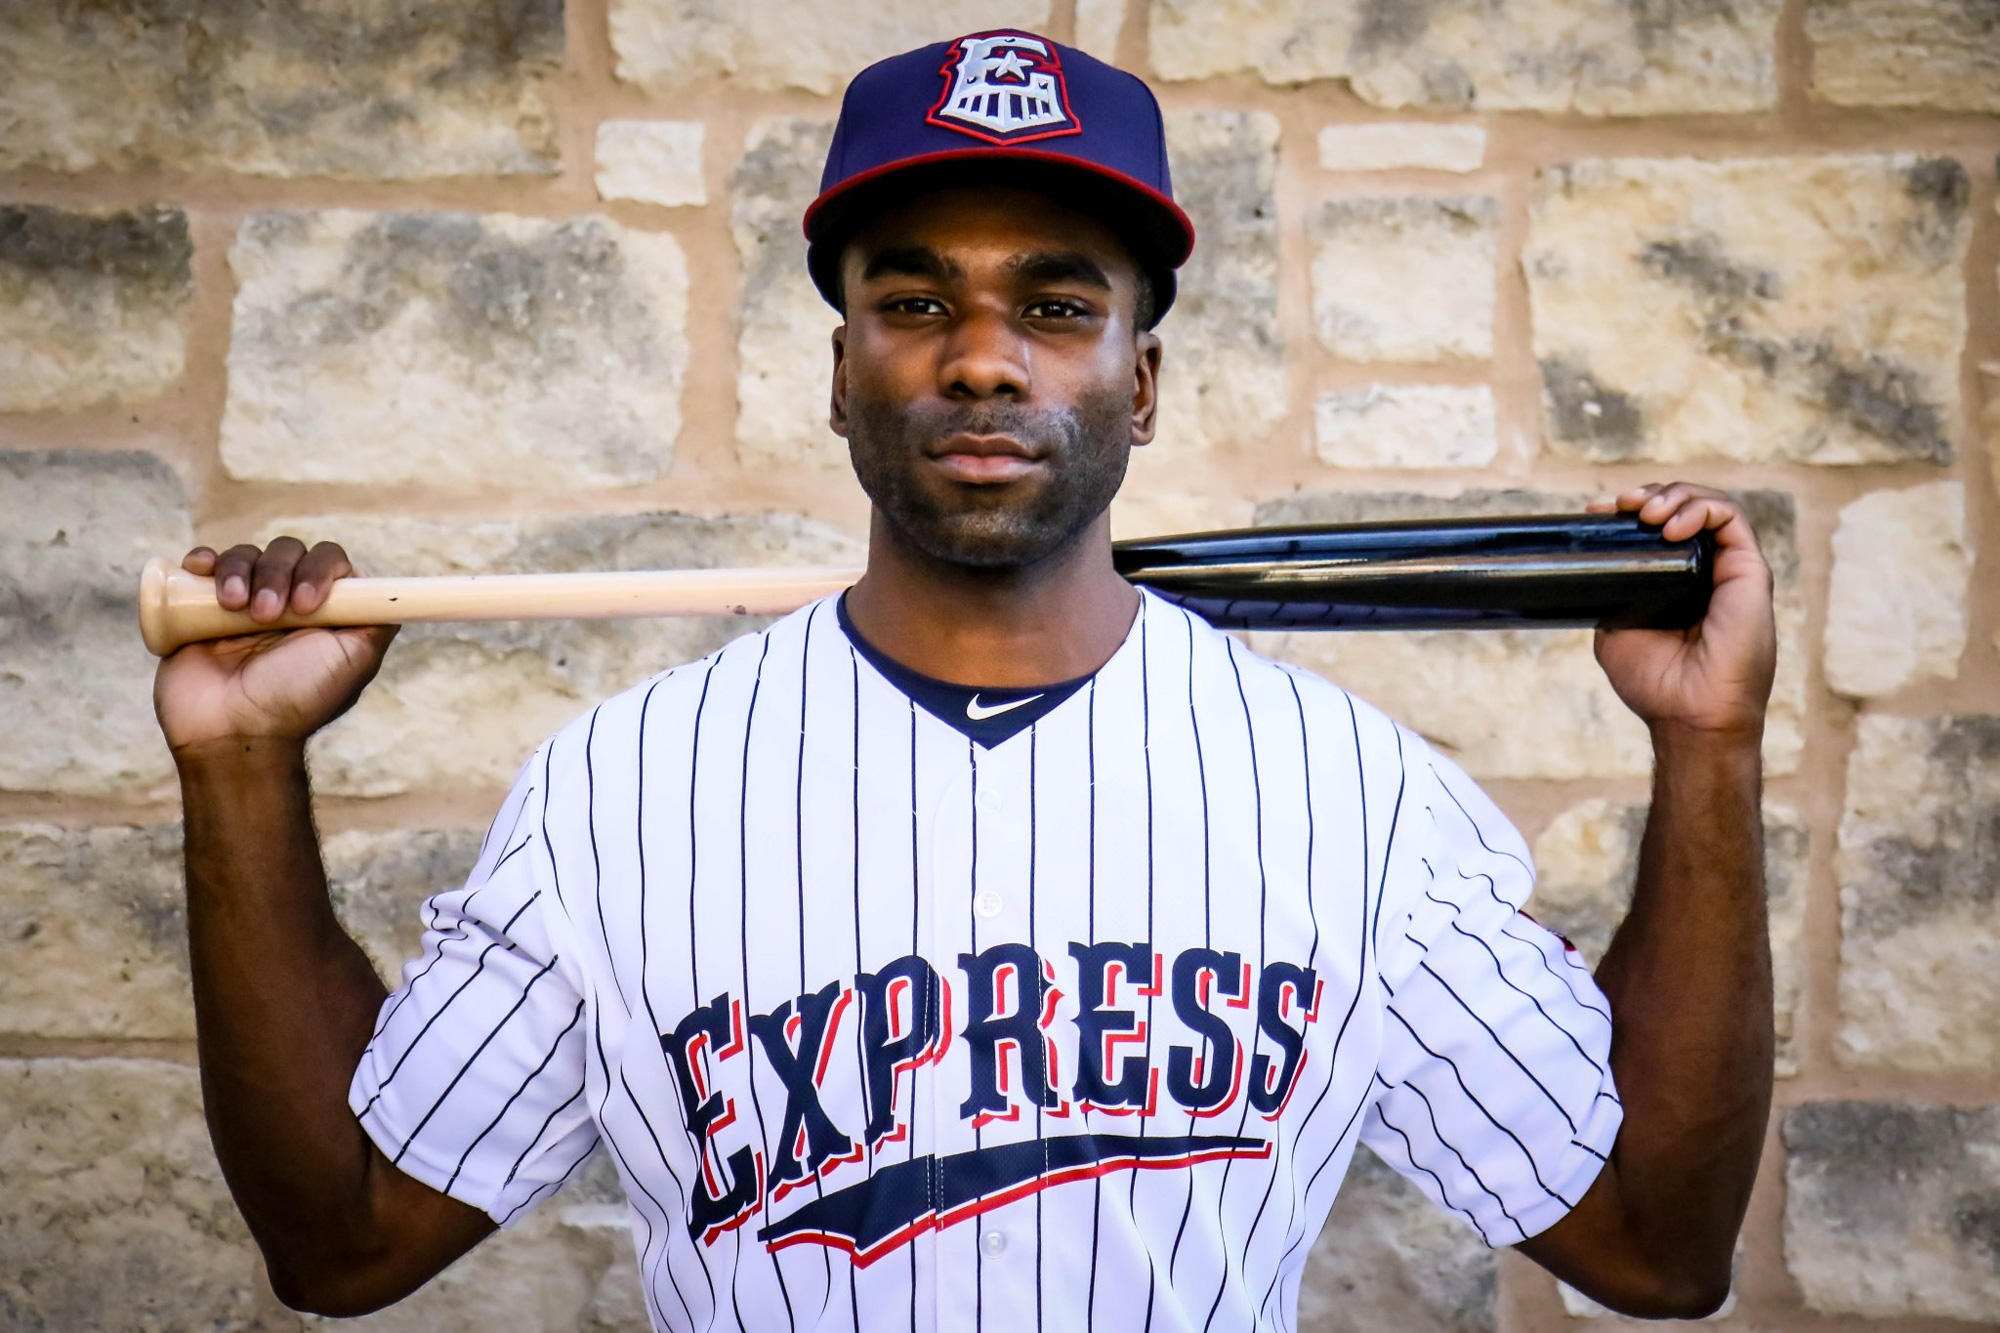 New Logos for Round Rock Express by Brandiose